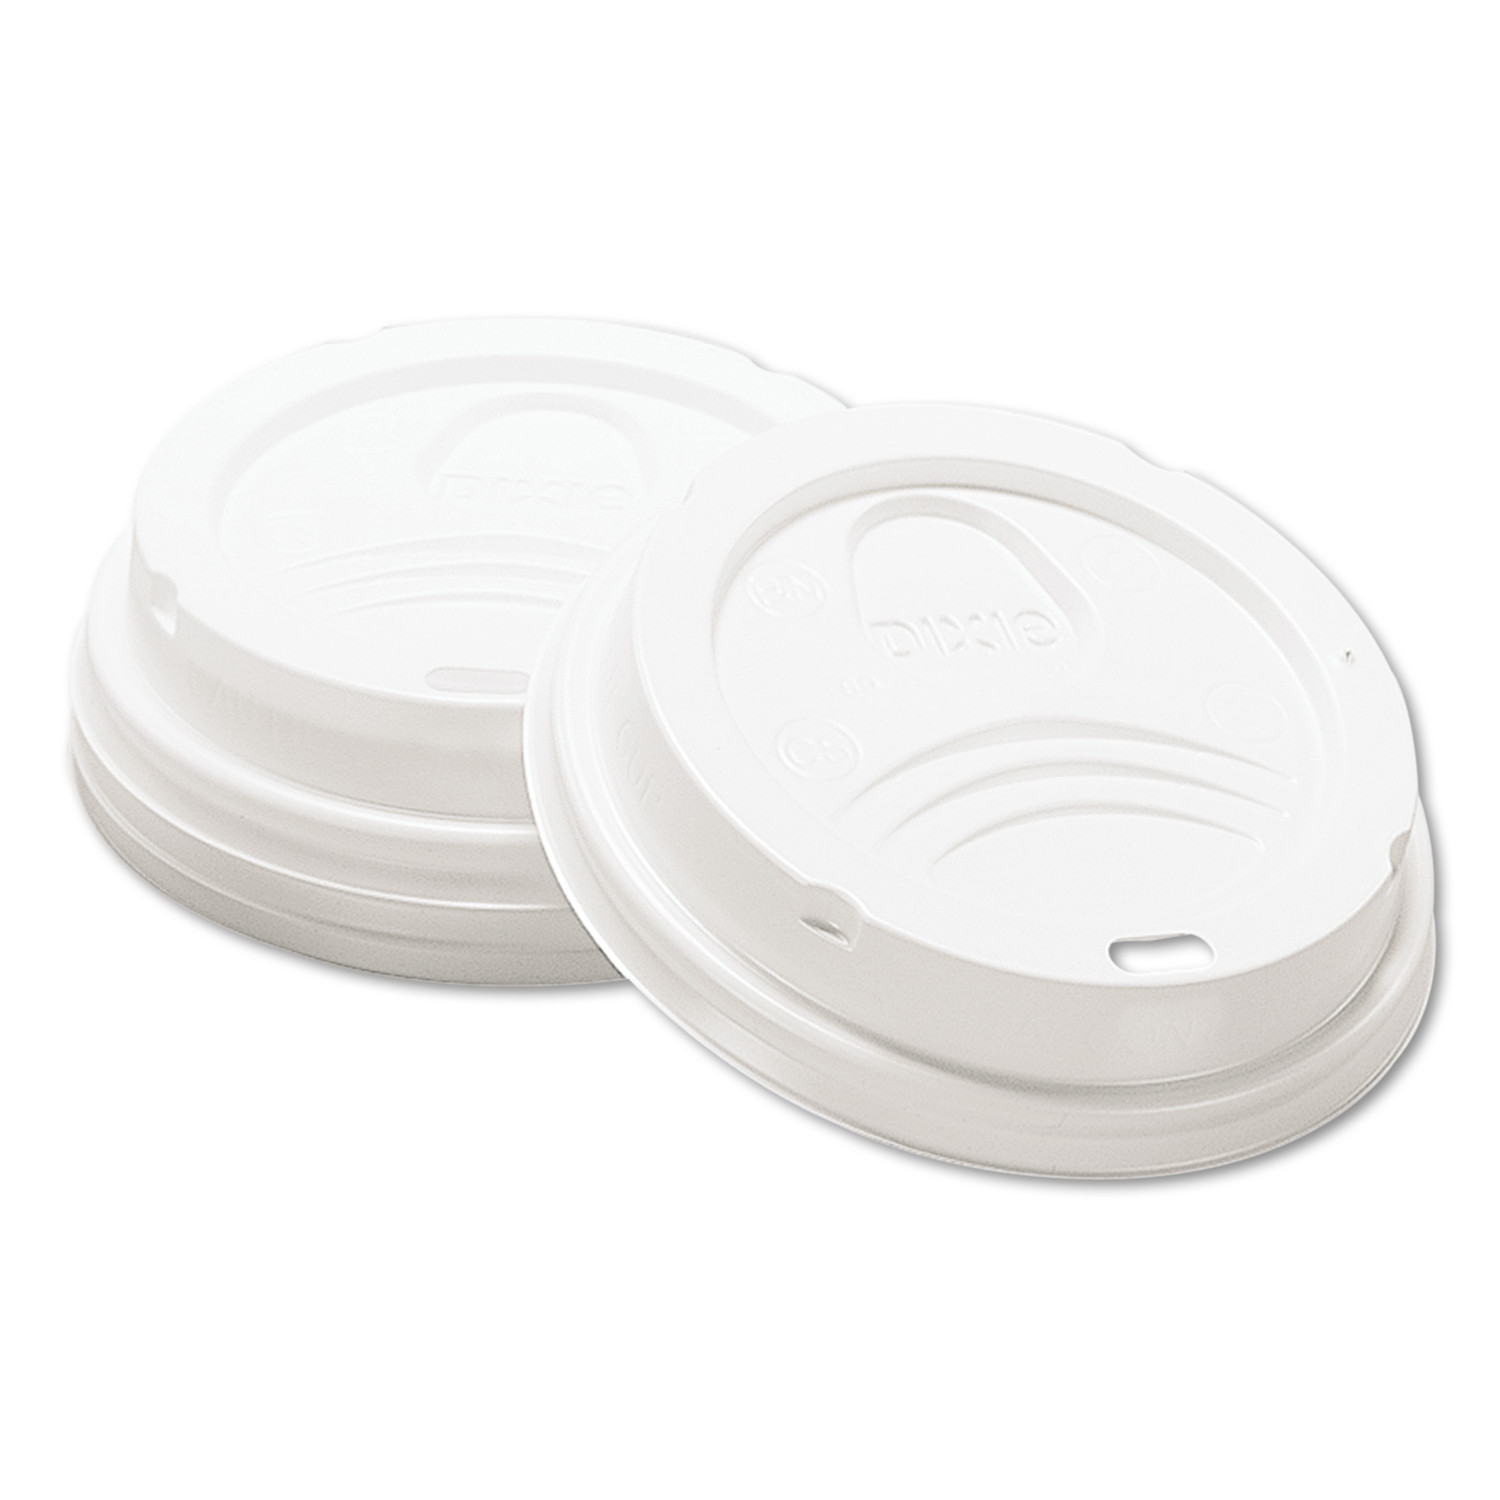 Dixie Drink-Thru Lids, 1000ct -DXE9538DX